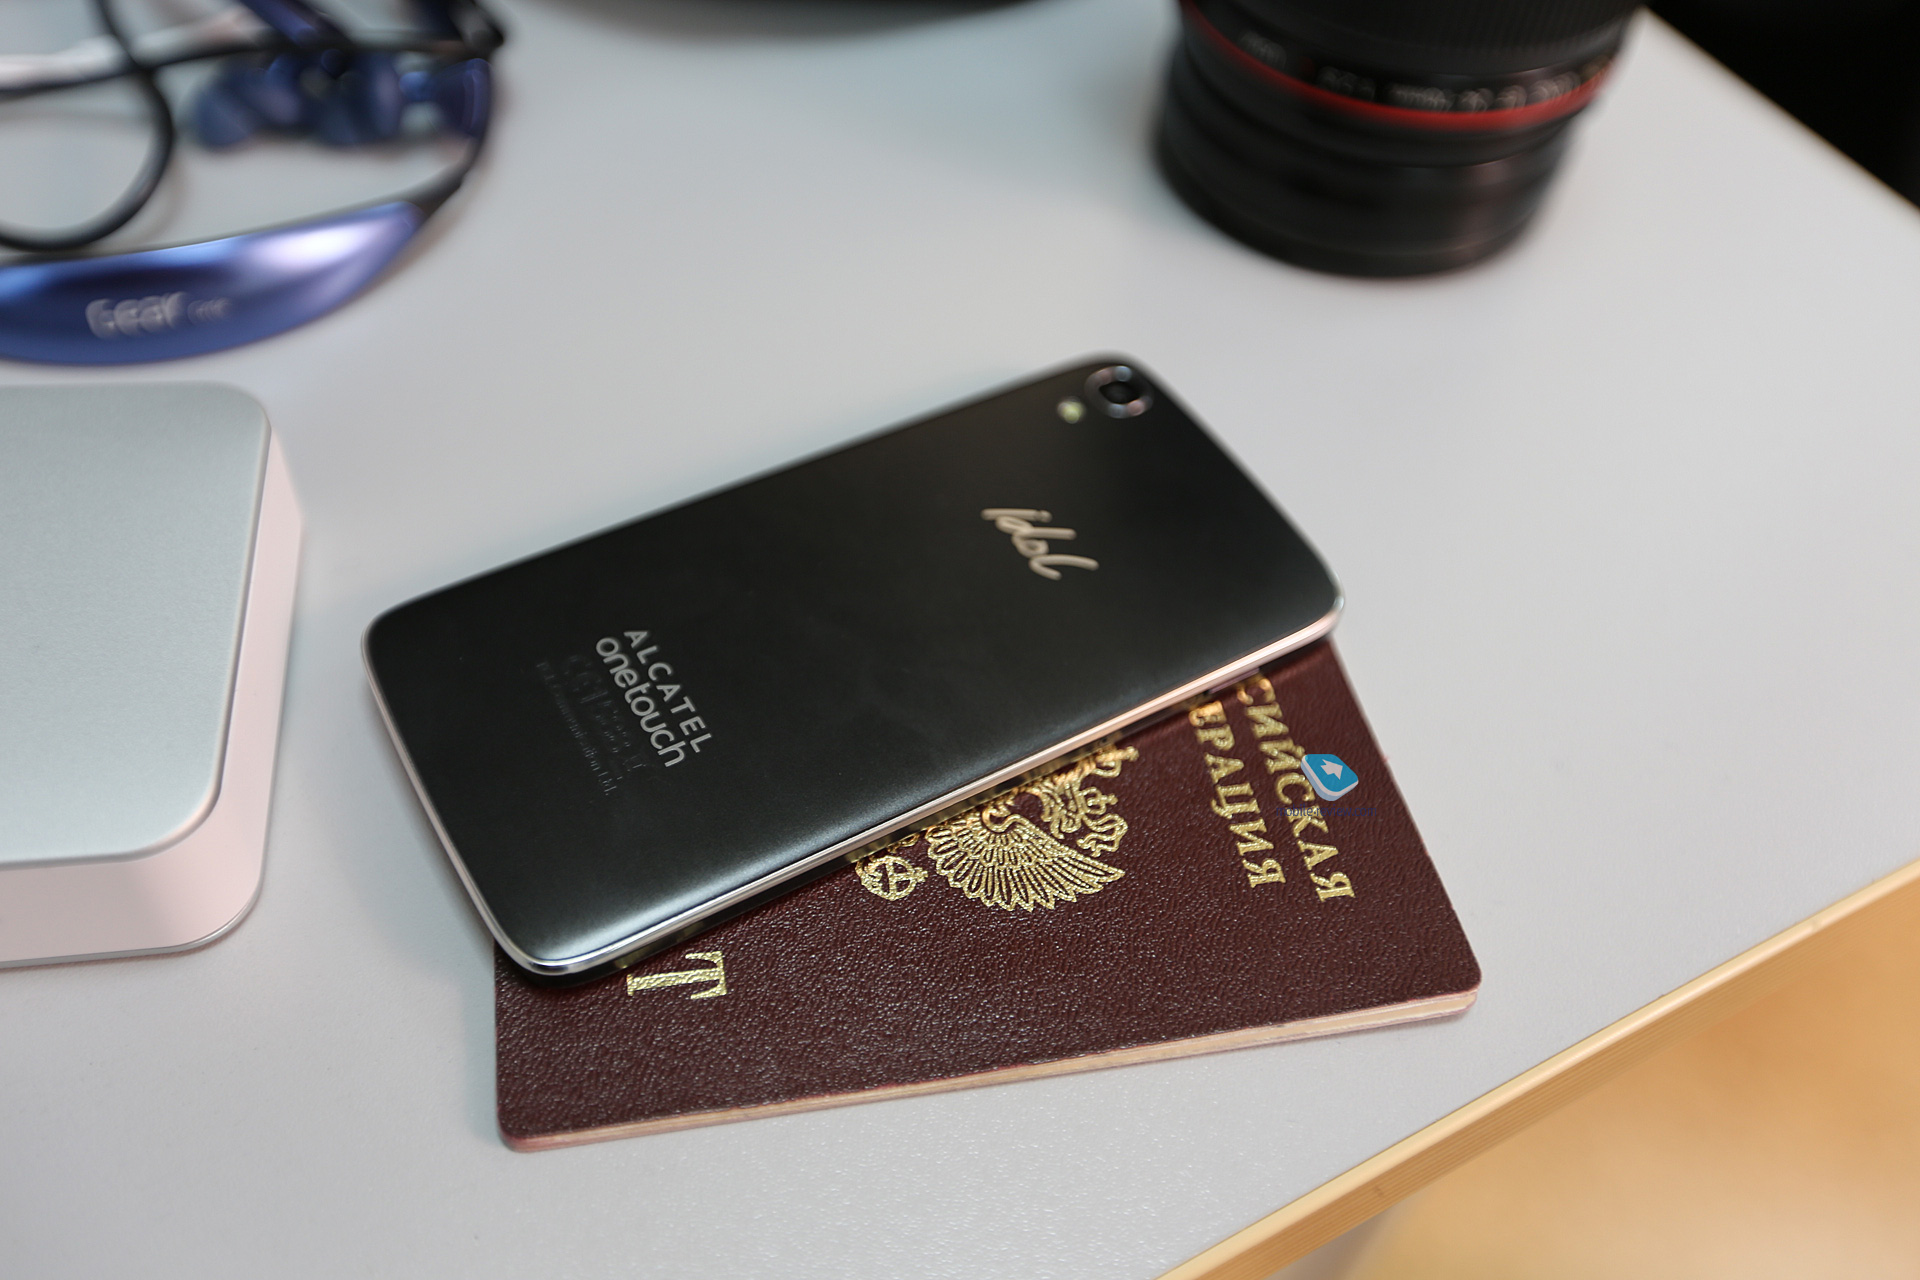 Mobile-review com Первый взгляд на Alcatel OneTouch Idol 3